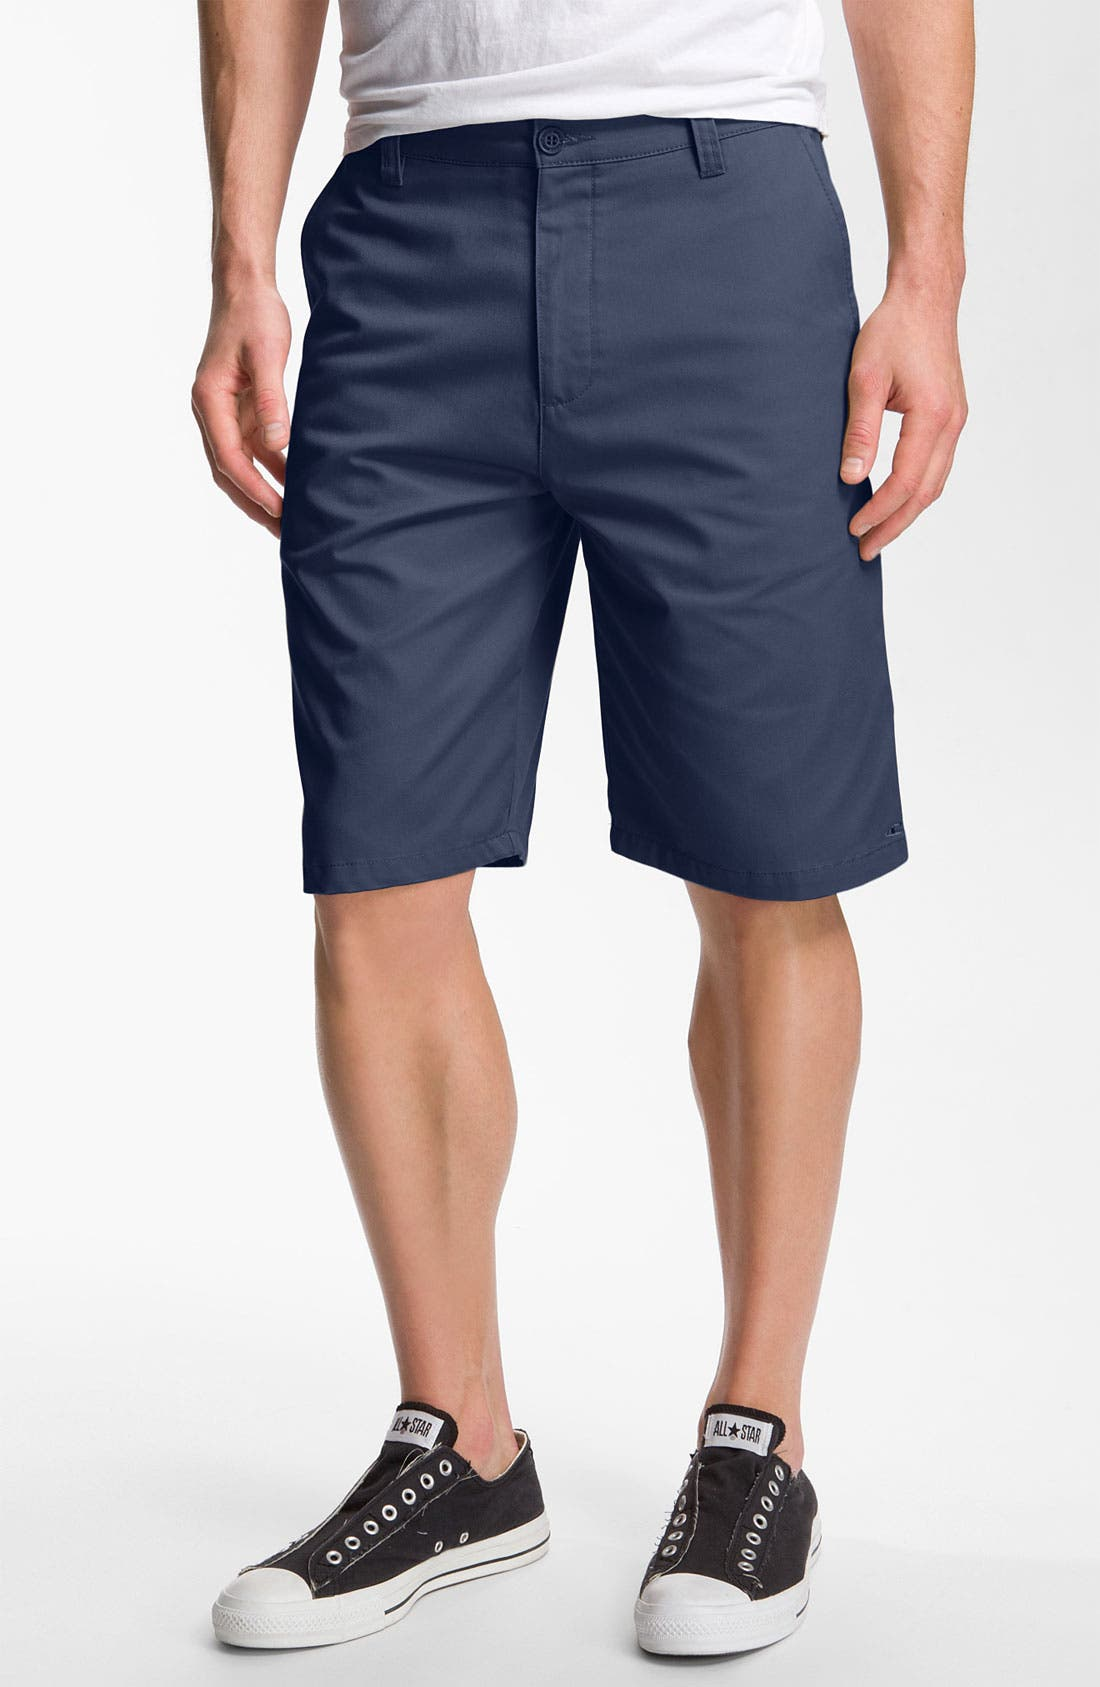 Alternate Image 1 Selected - O'Neill 'Contact' Shorts (Online Only)